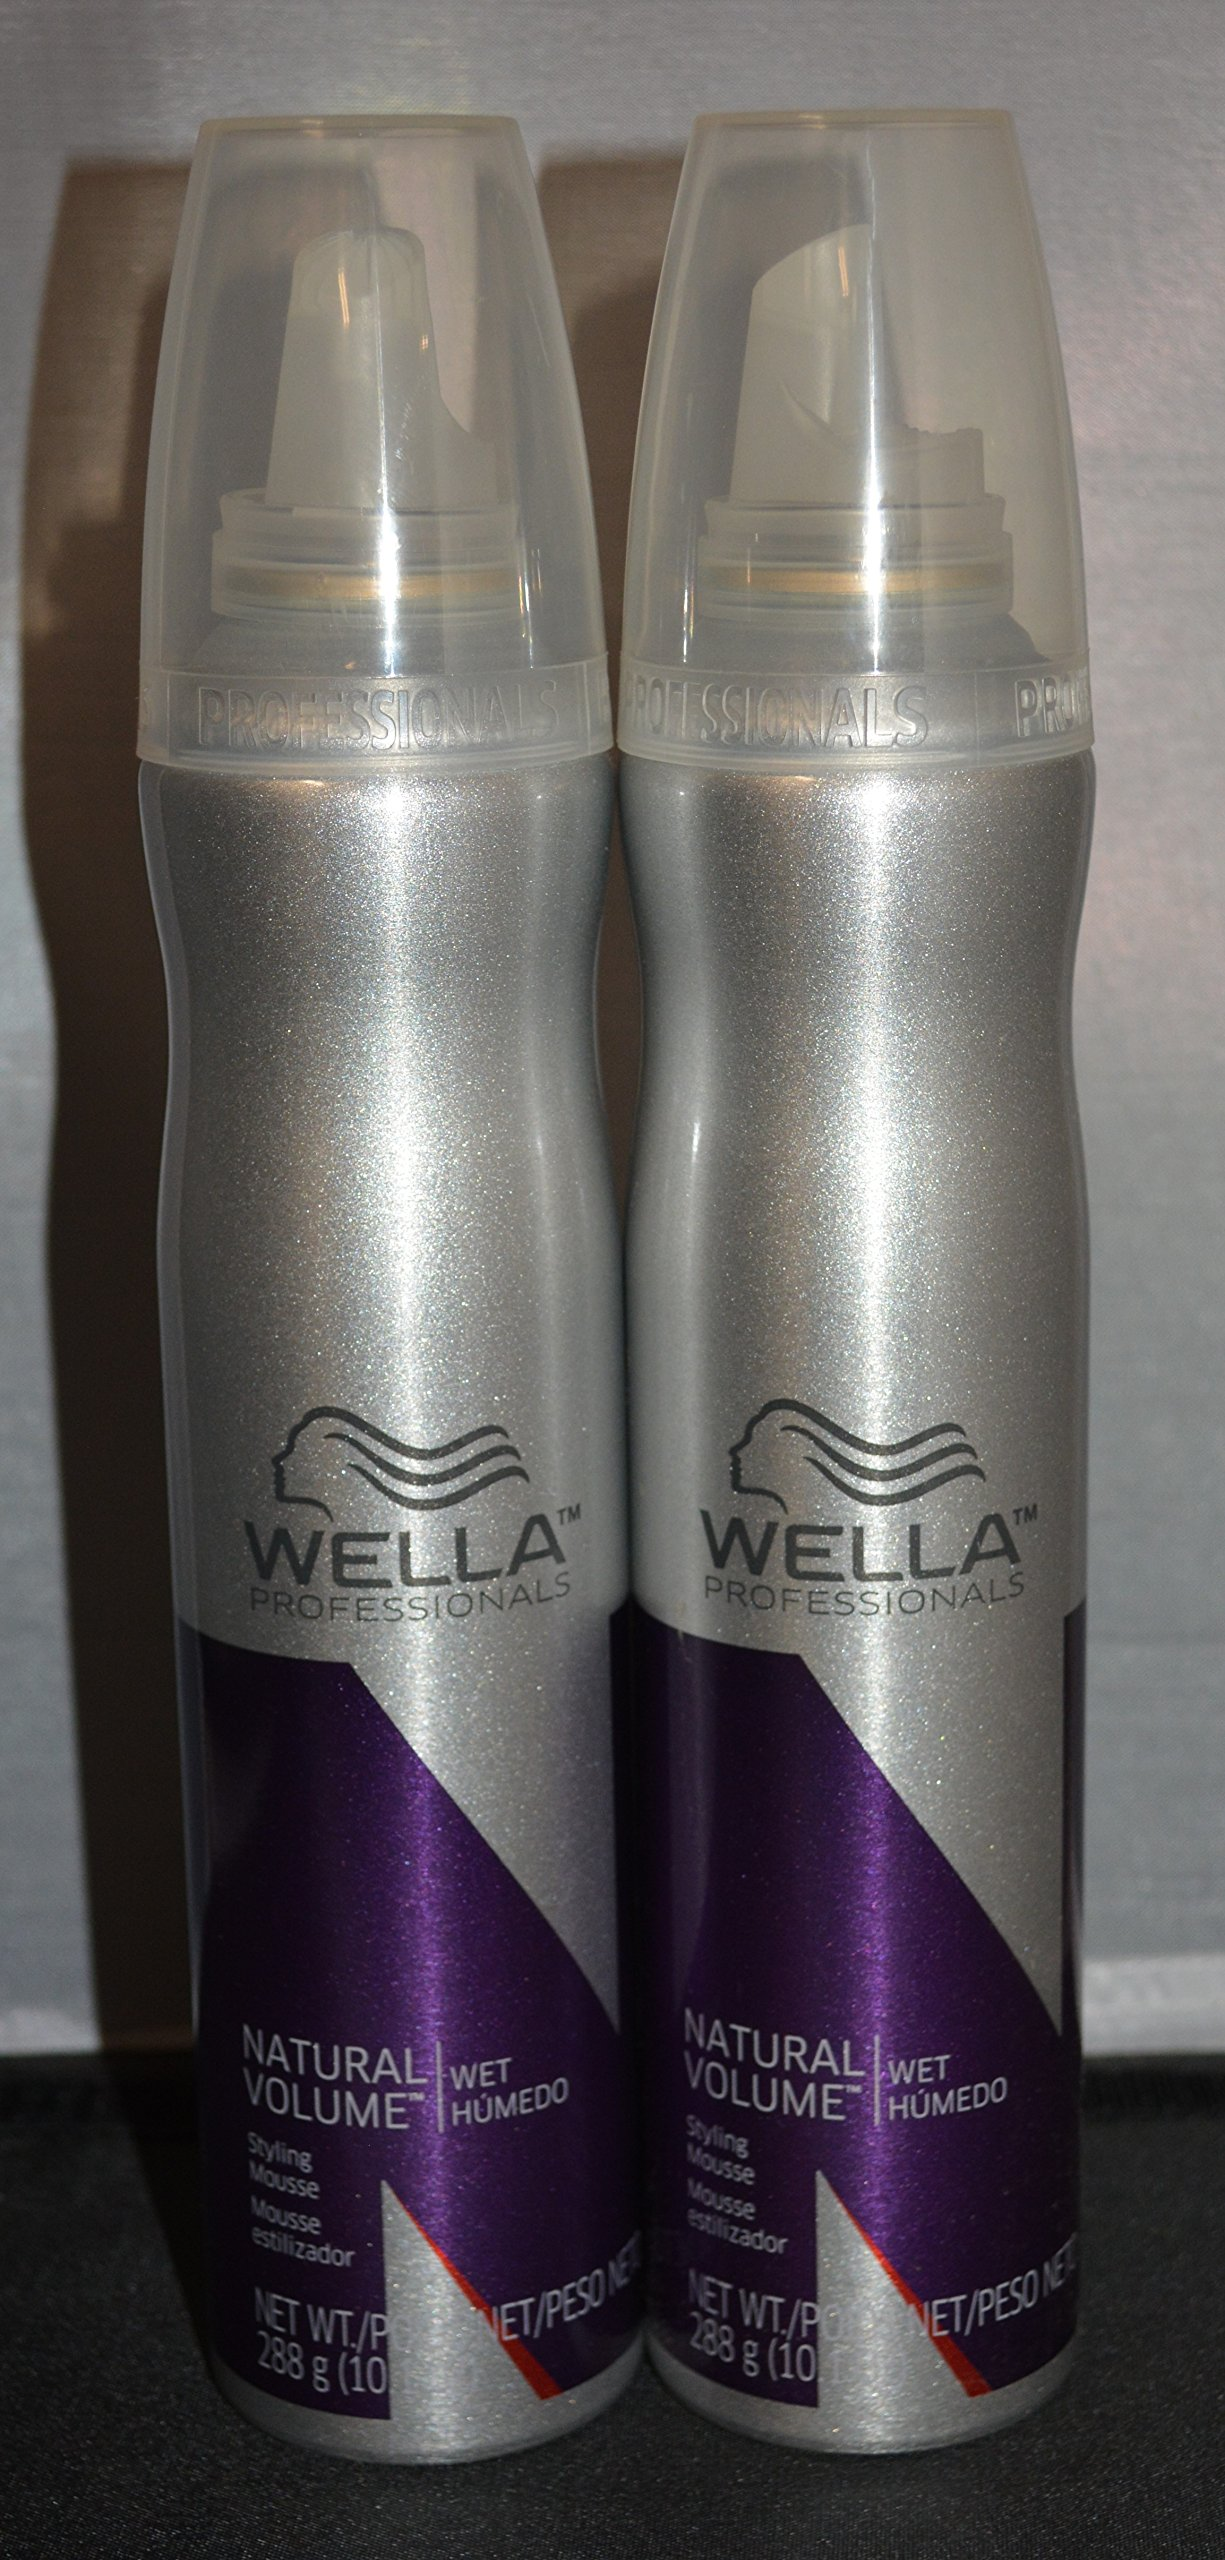 Wella Professionals Natural Volume Mousse 10.1 oz (2 pack) Gives Hair a Soft, Refined Hold